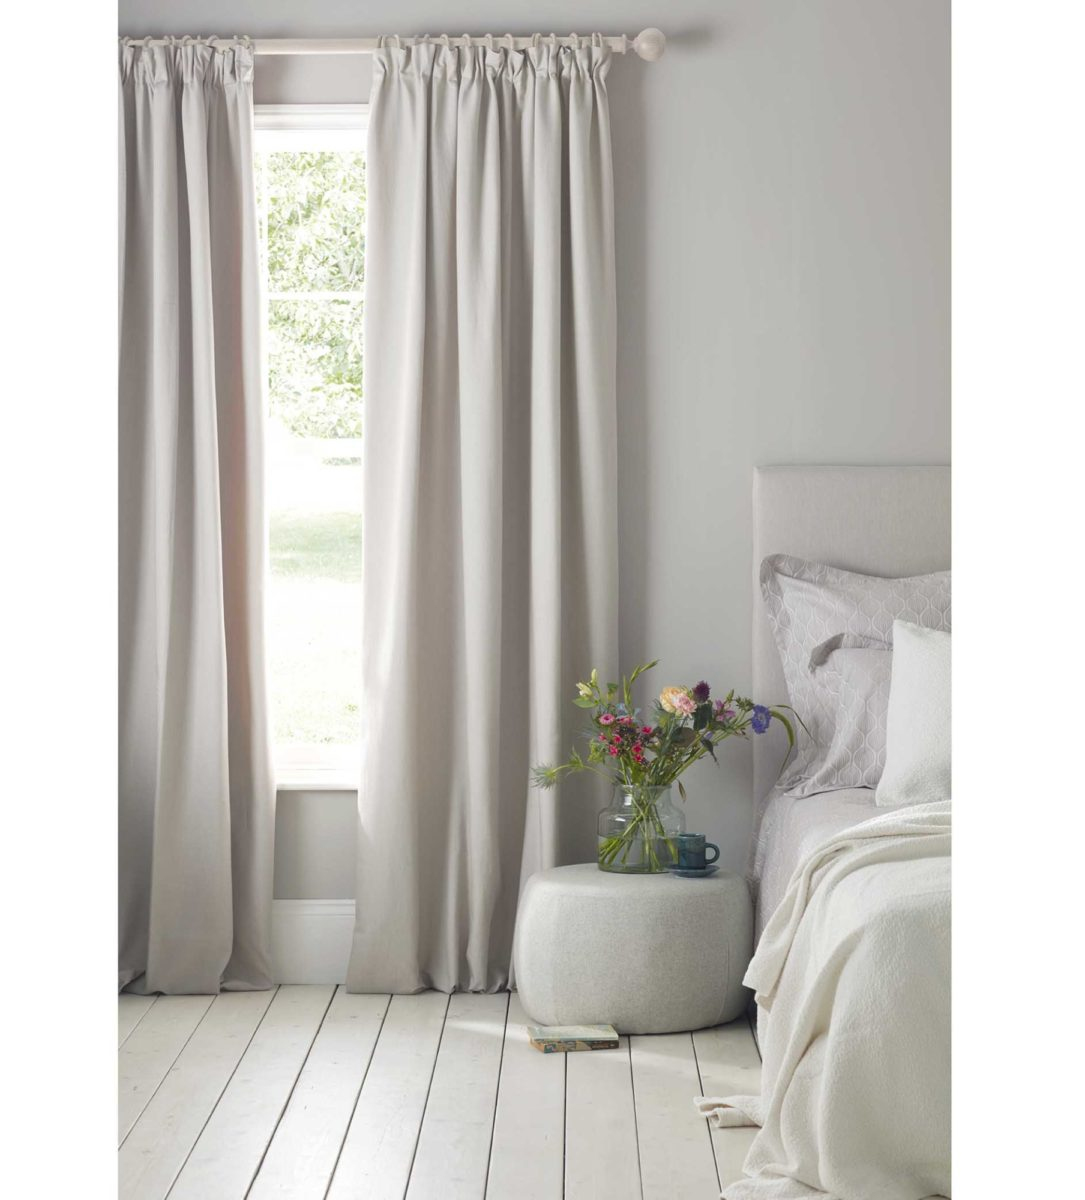 Relaxed Denim Dove Grey Blackout Curtains Pair